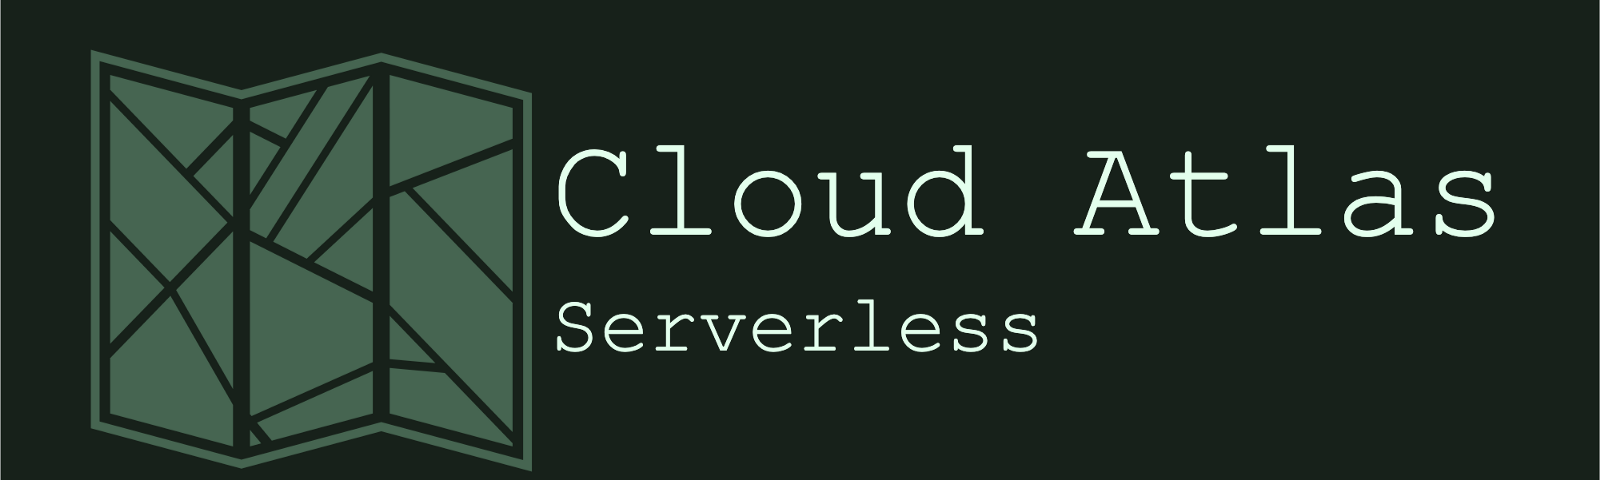 """Title image """"Cloud Atlas. Serverless"""". Showing the outline of a paper map."""